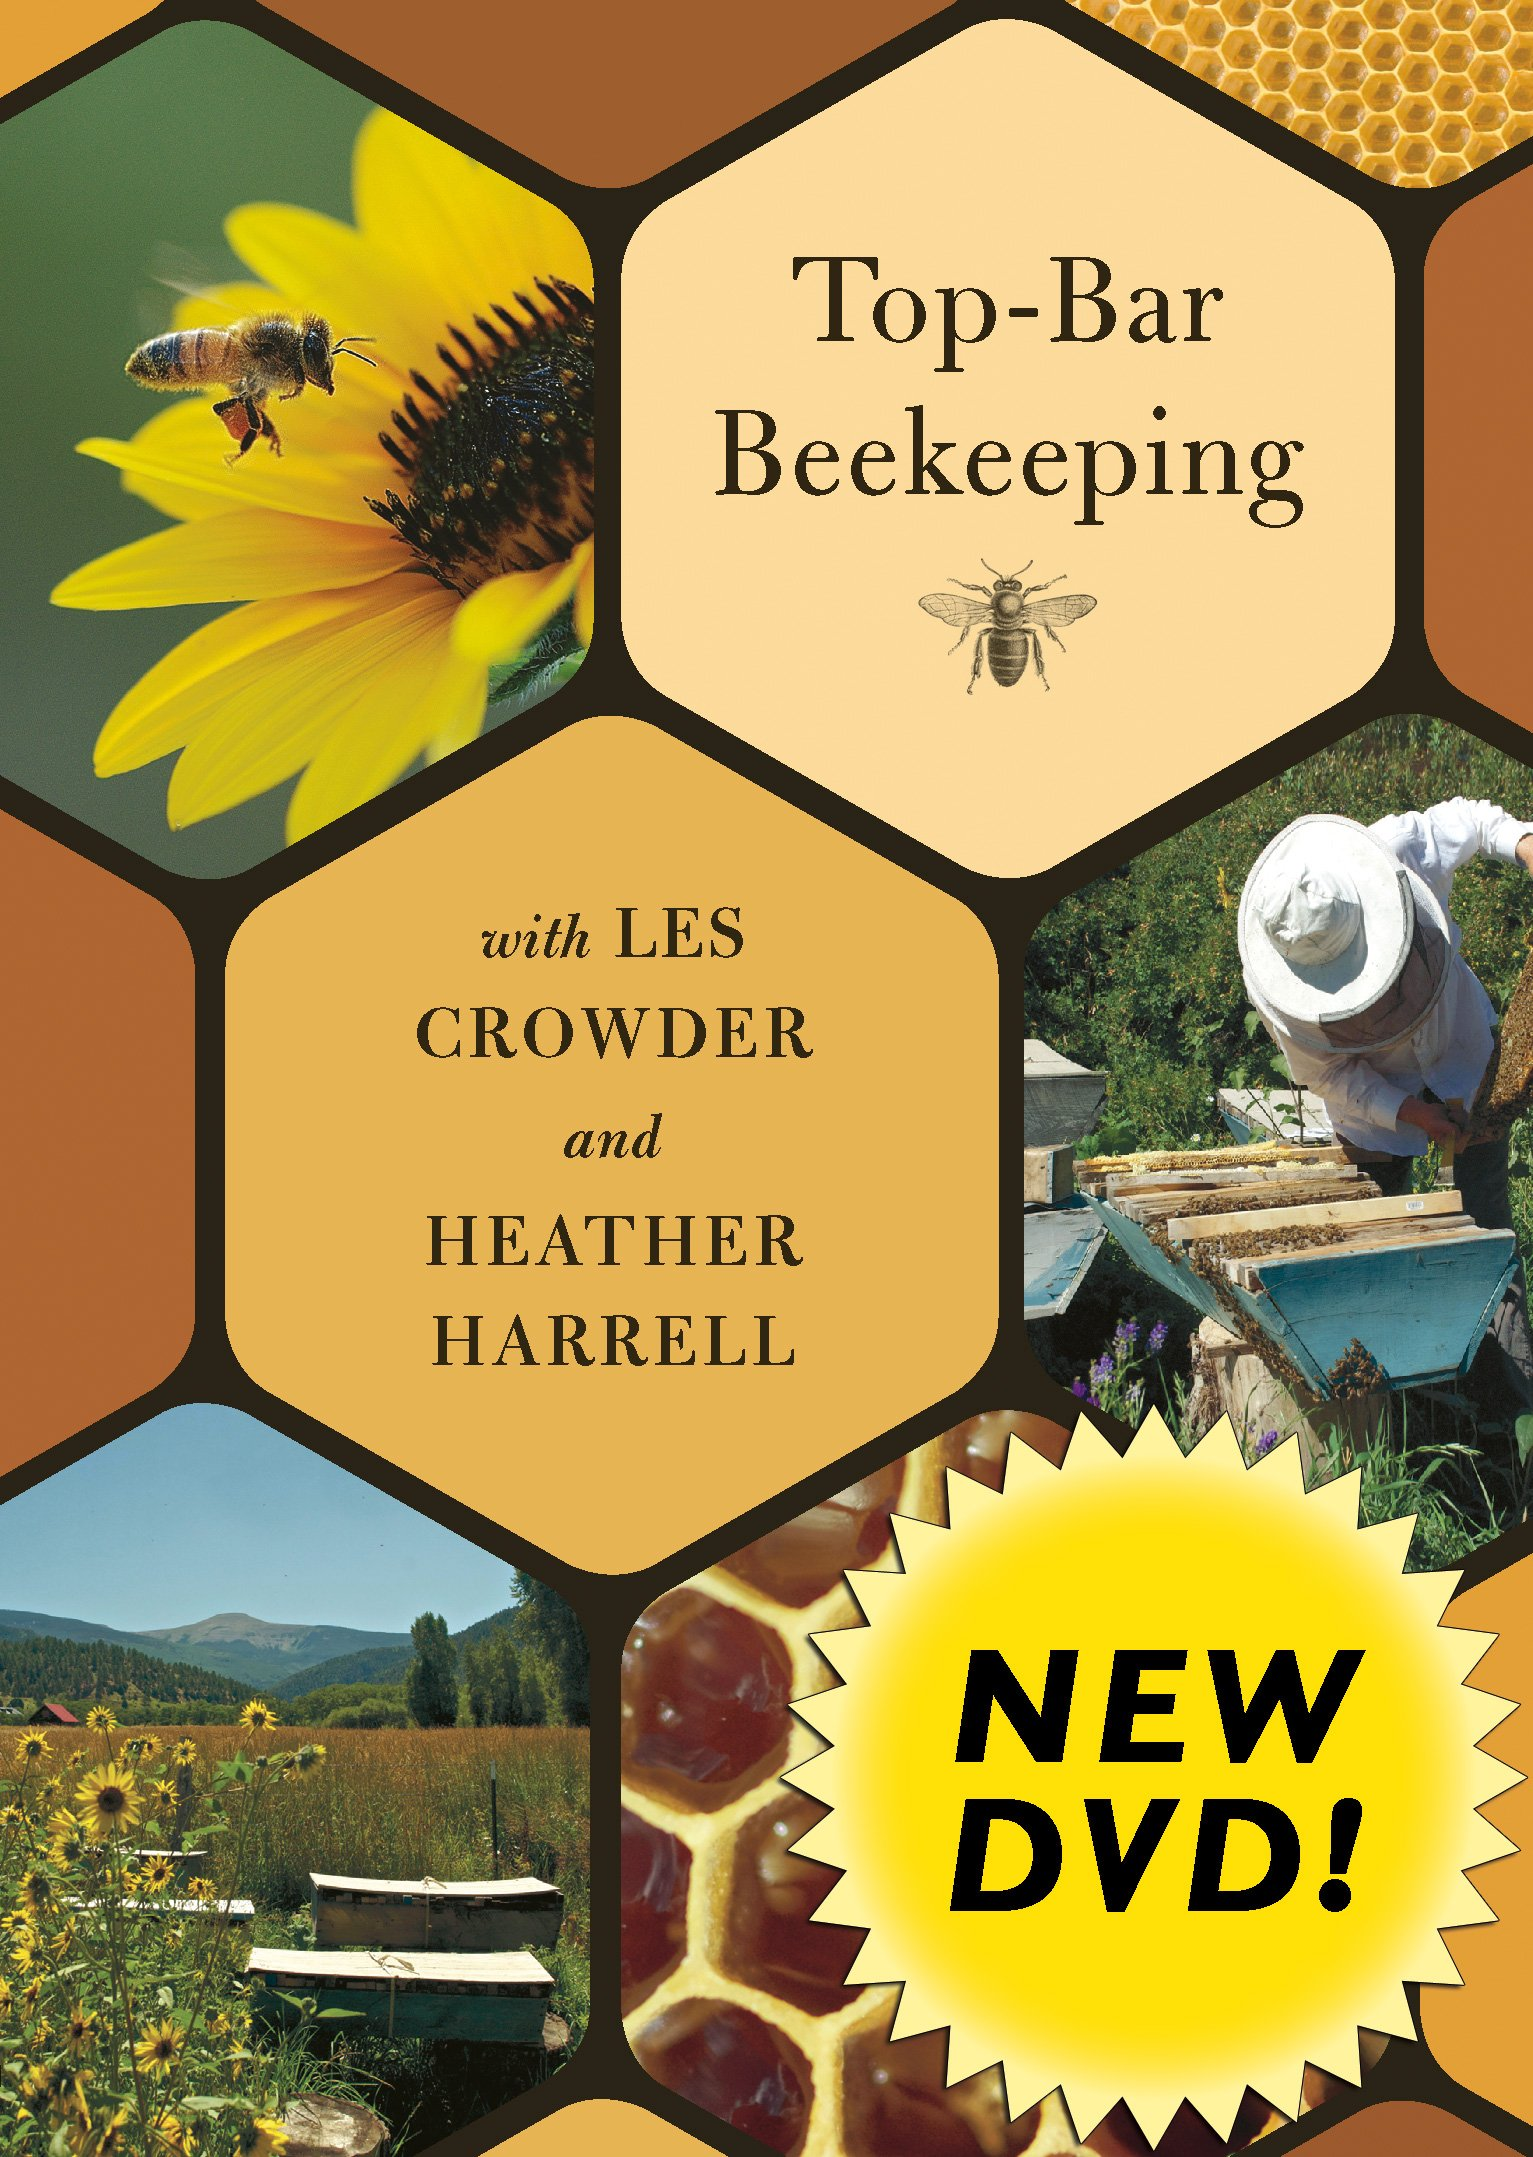 Top-Bar Beekeeping with Les Crowder and Heather Harrell (DVD) Cover